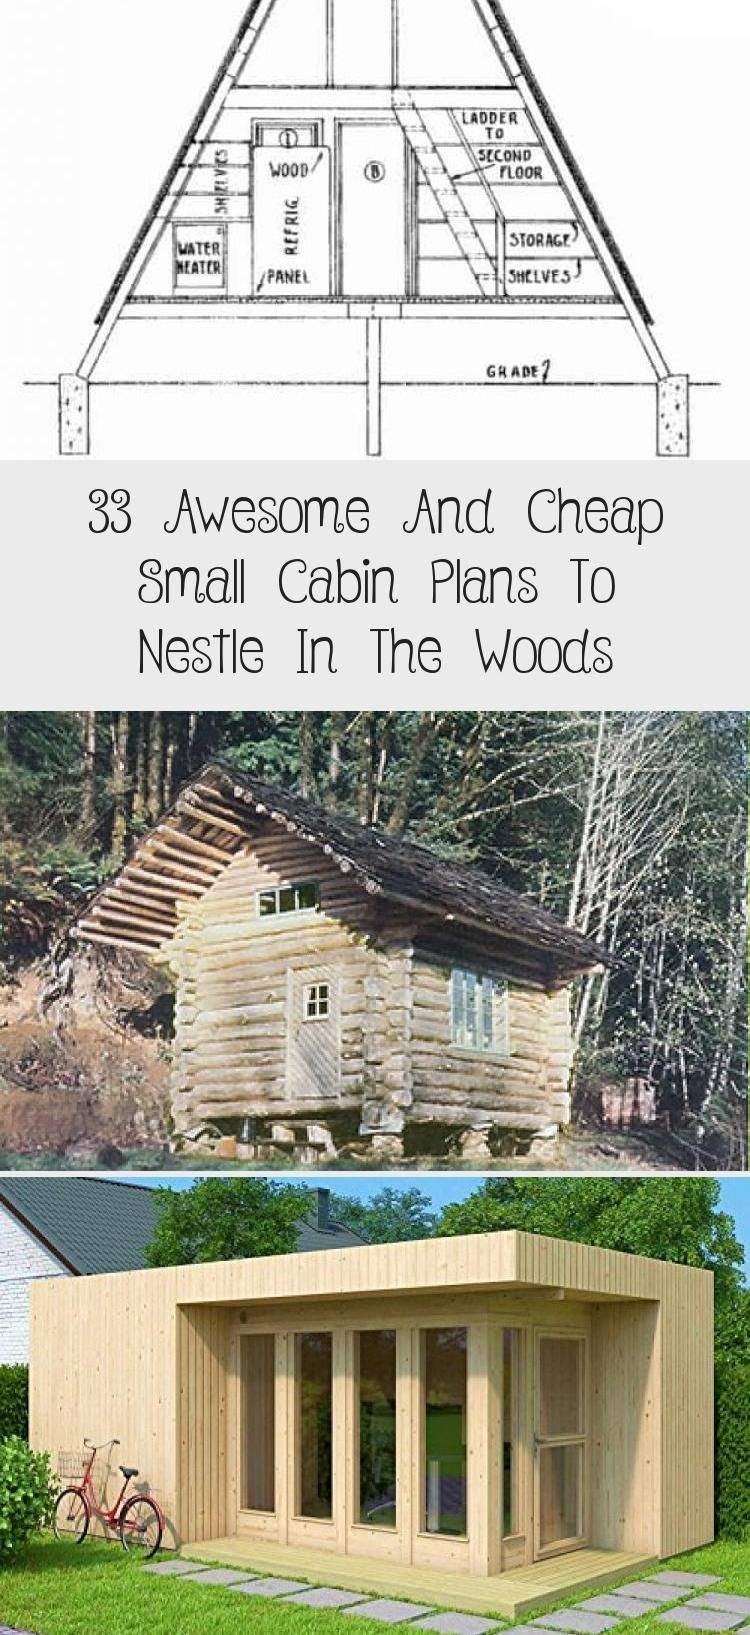 33 Free Or Cheap Small Cabin Plans To Nestle In The Woods Tinyhousedesigncheap Small Cabin Plans Cabin Plans Small Cabin